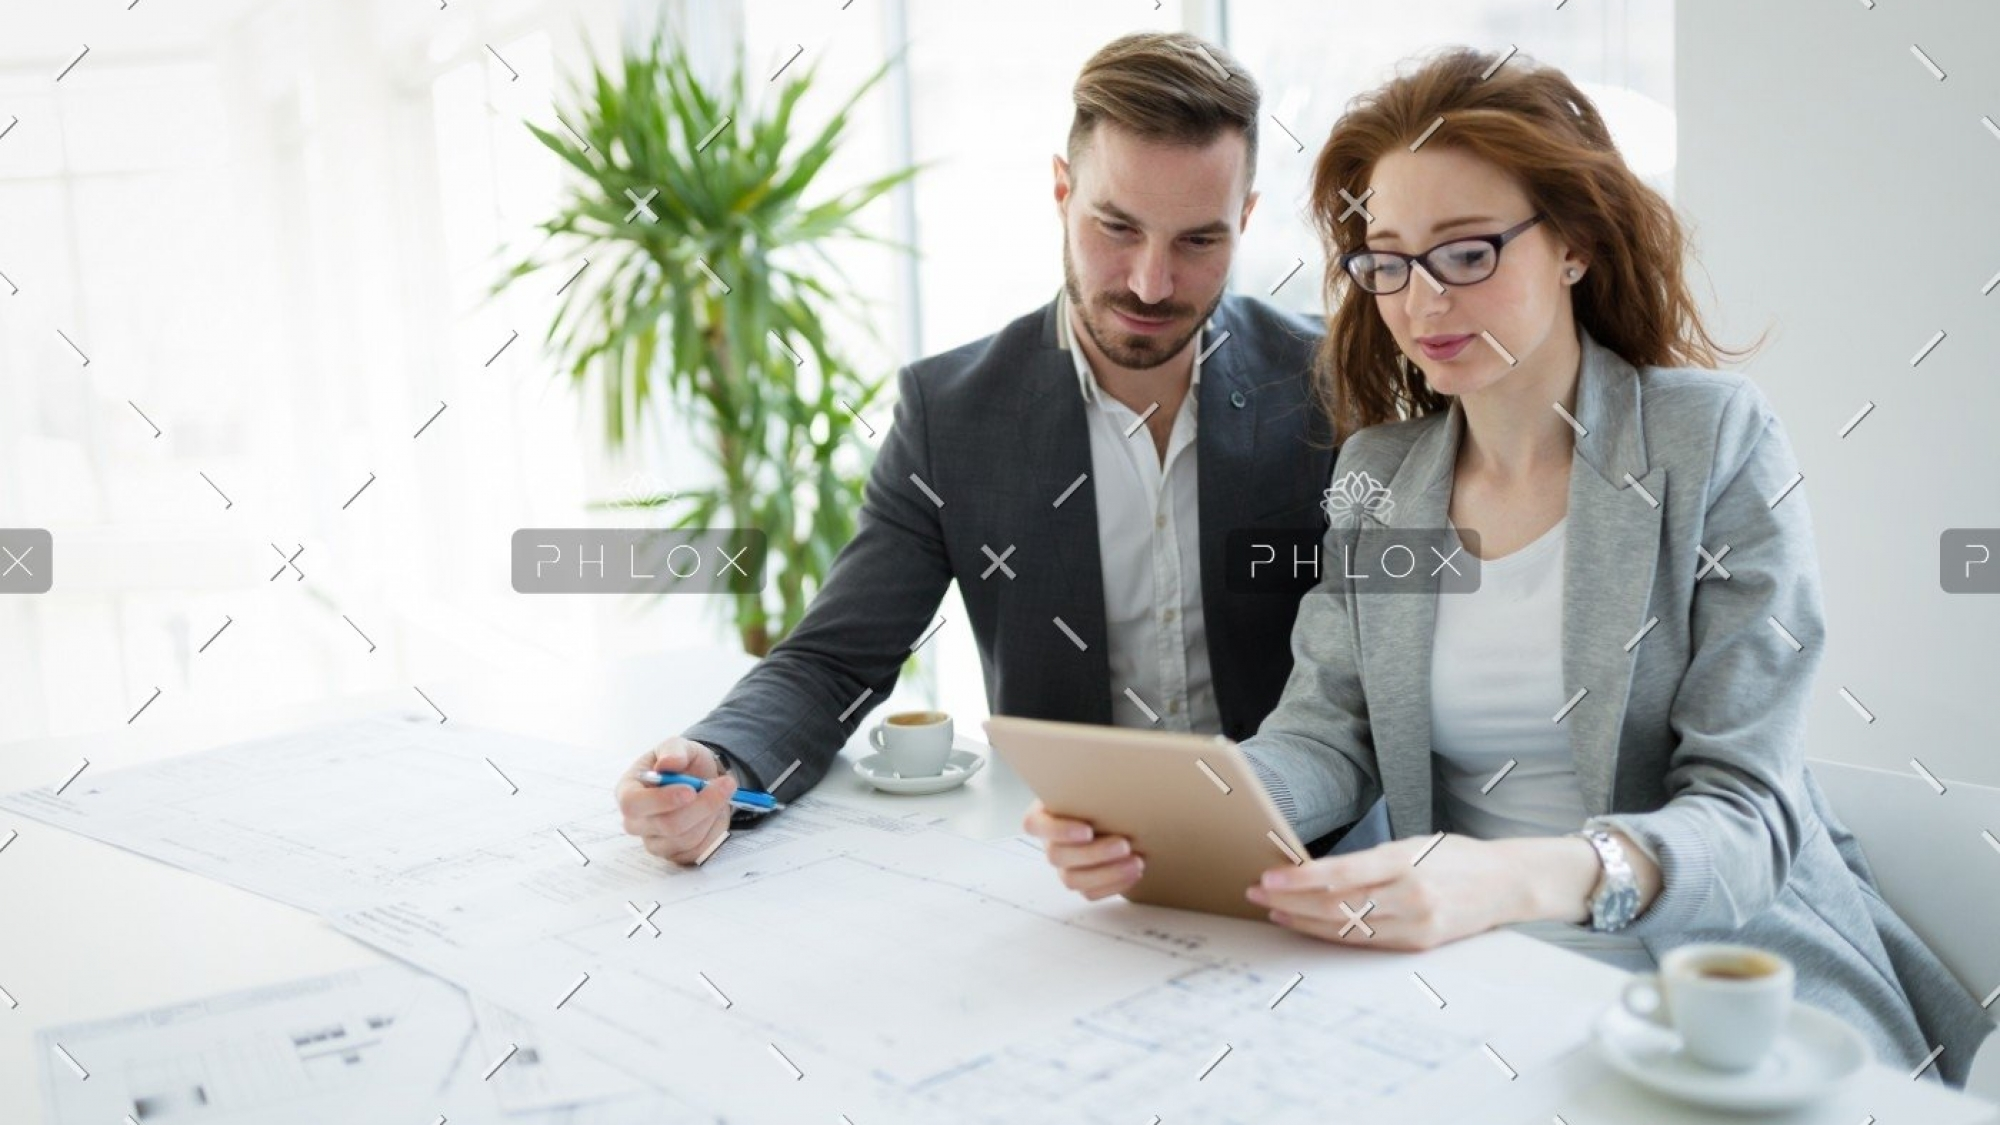 demo-attachment-2723-portrait-of-young-architect-woman-on-meeting-KFZCE3A